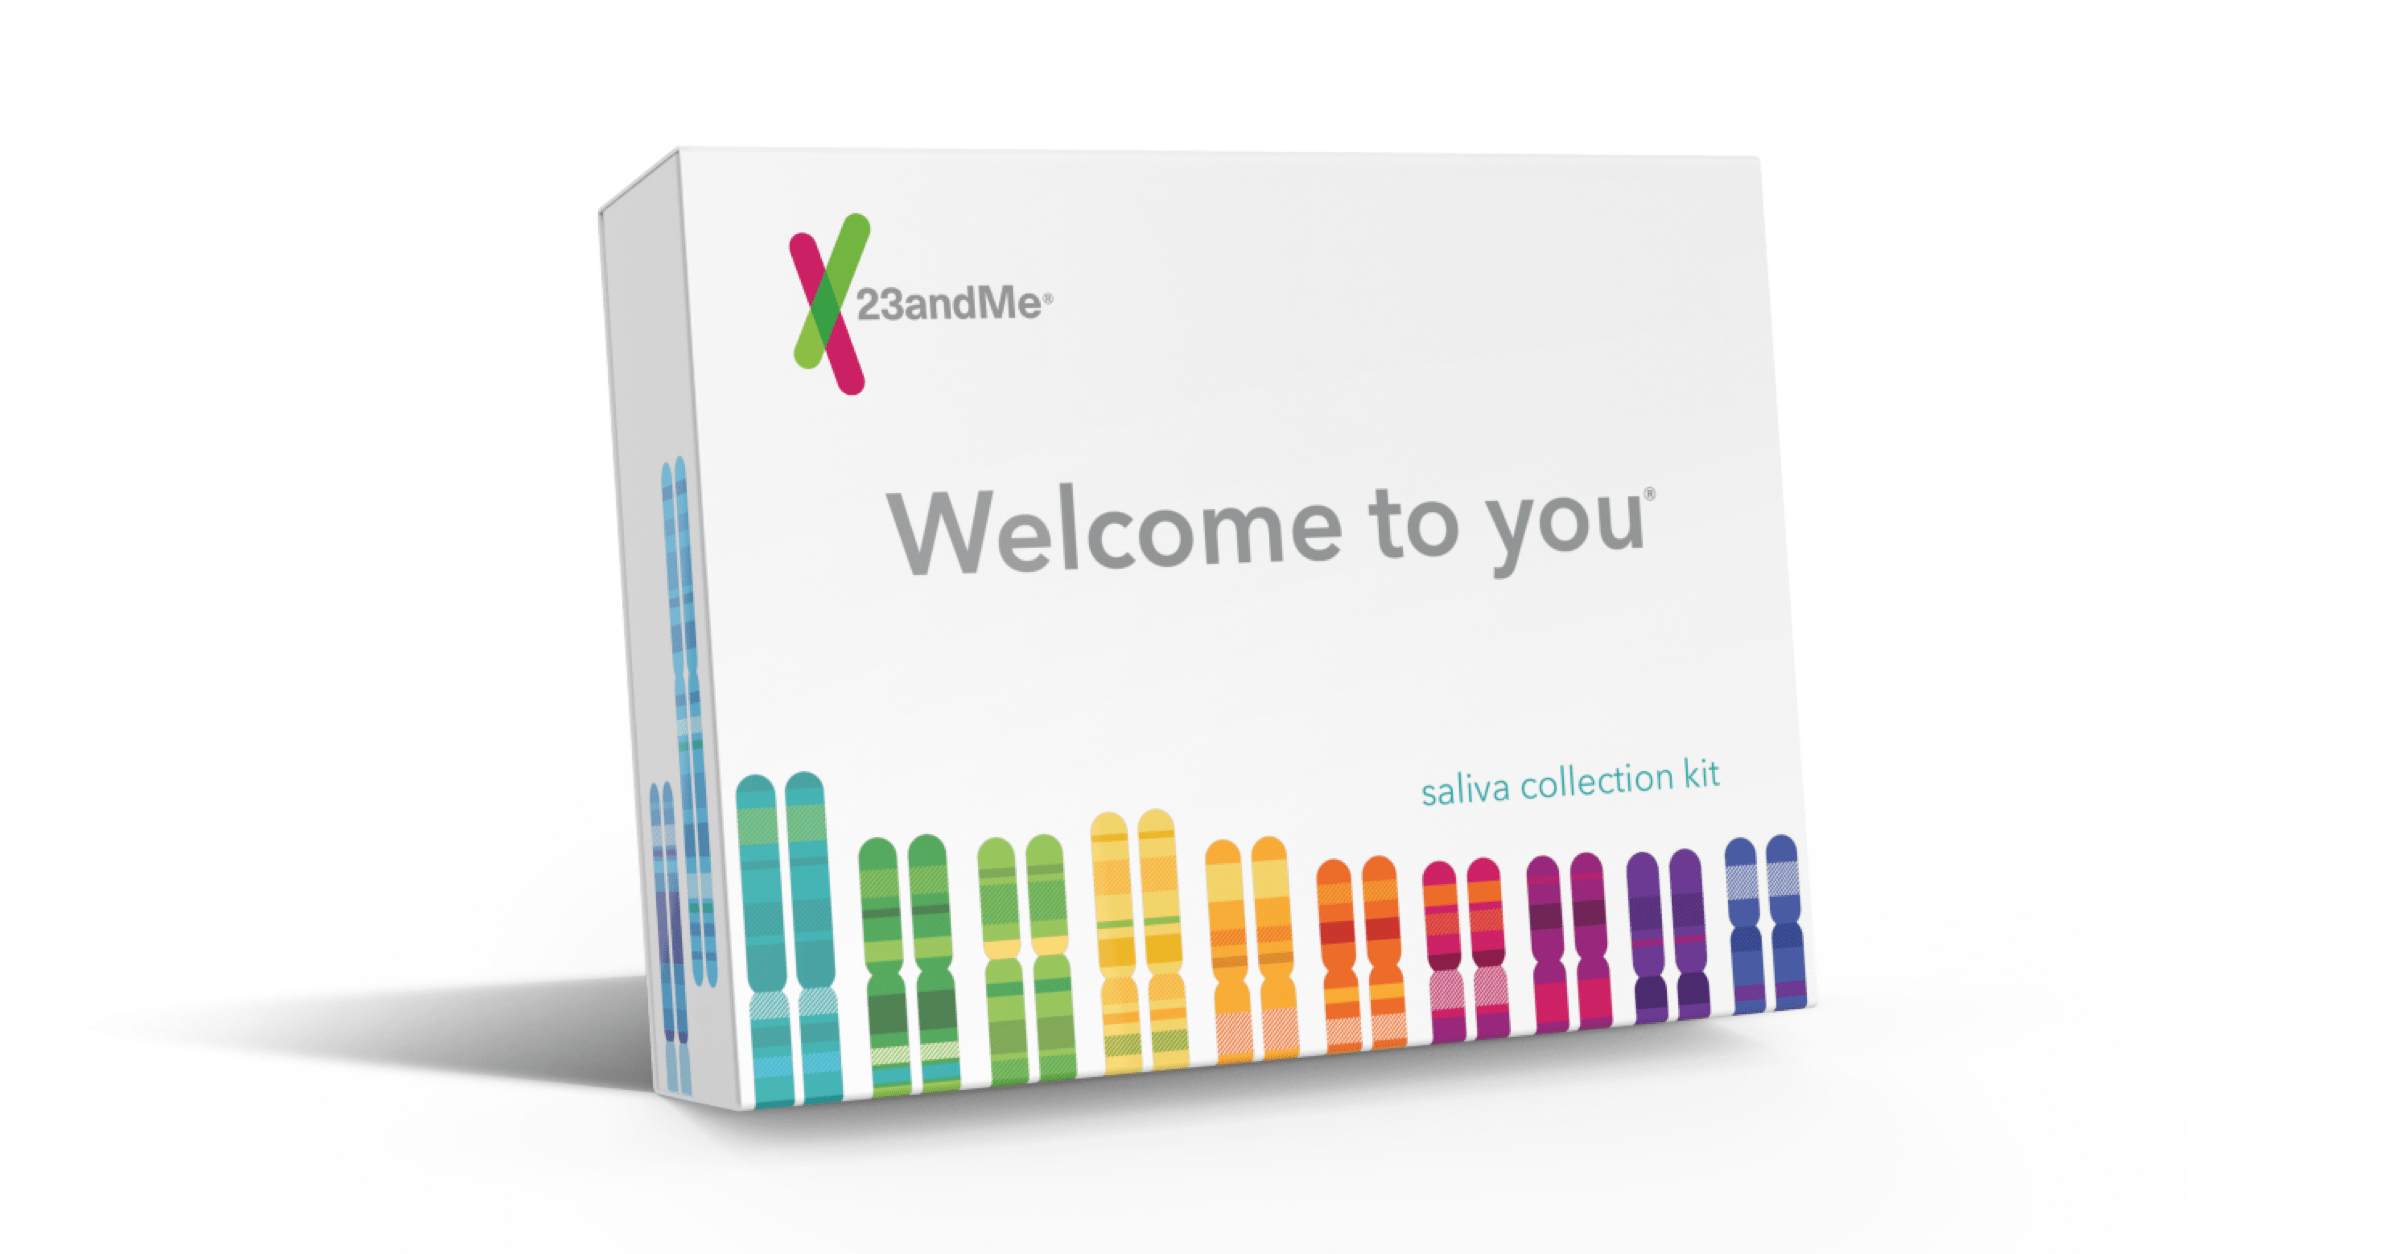 Compare our DNA Tests - 23andMe